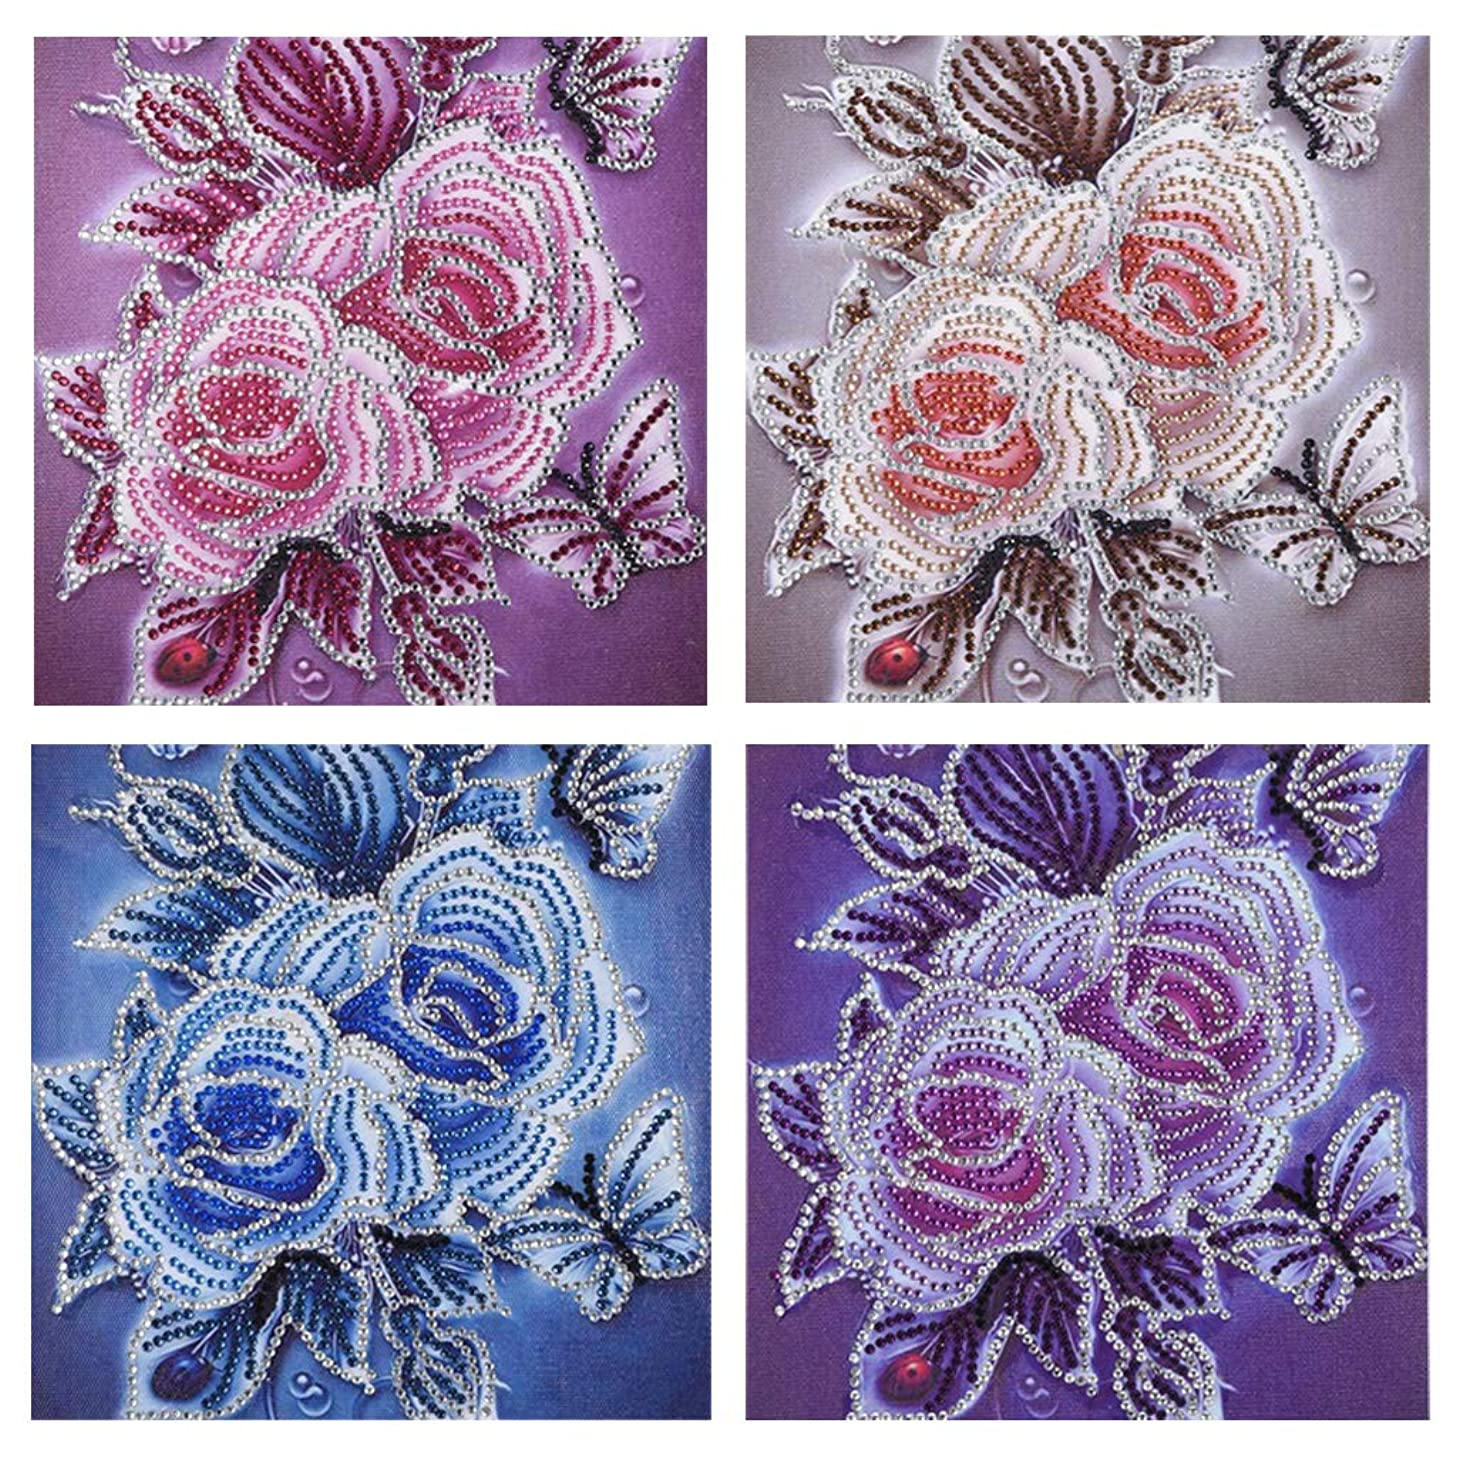 DIY 5D Special Shaped Diamond Painting by Number Kits, Section Drill Rhinestone Embroidery Cross Stitch Pictures for Home Decor Ross Beauty (Vintage Flower 01)